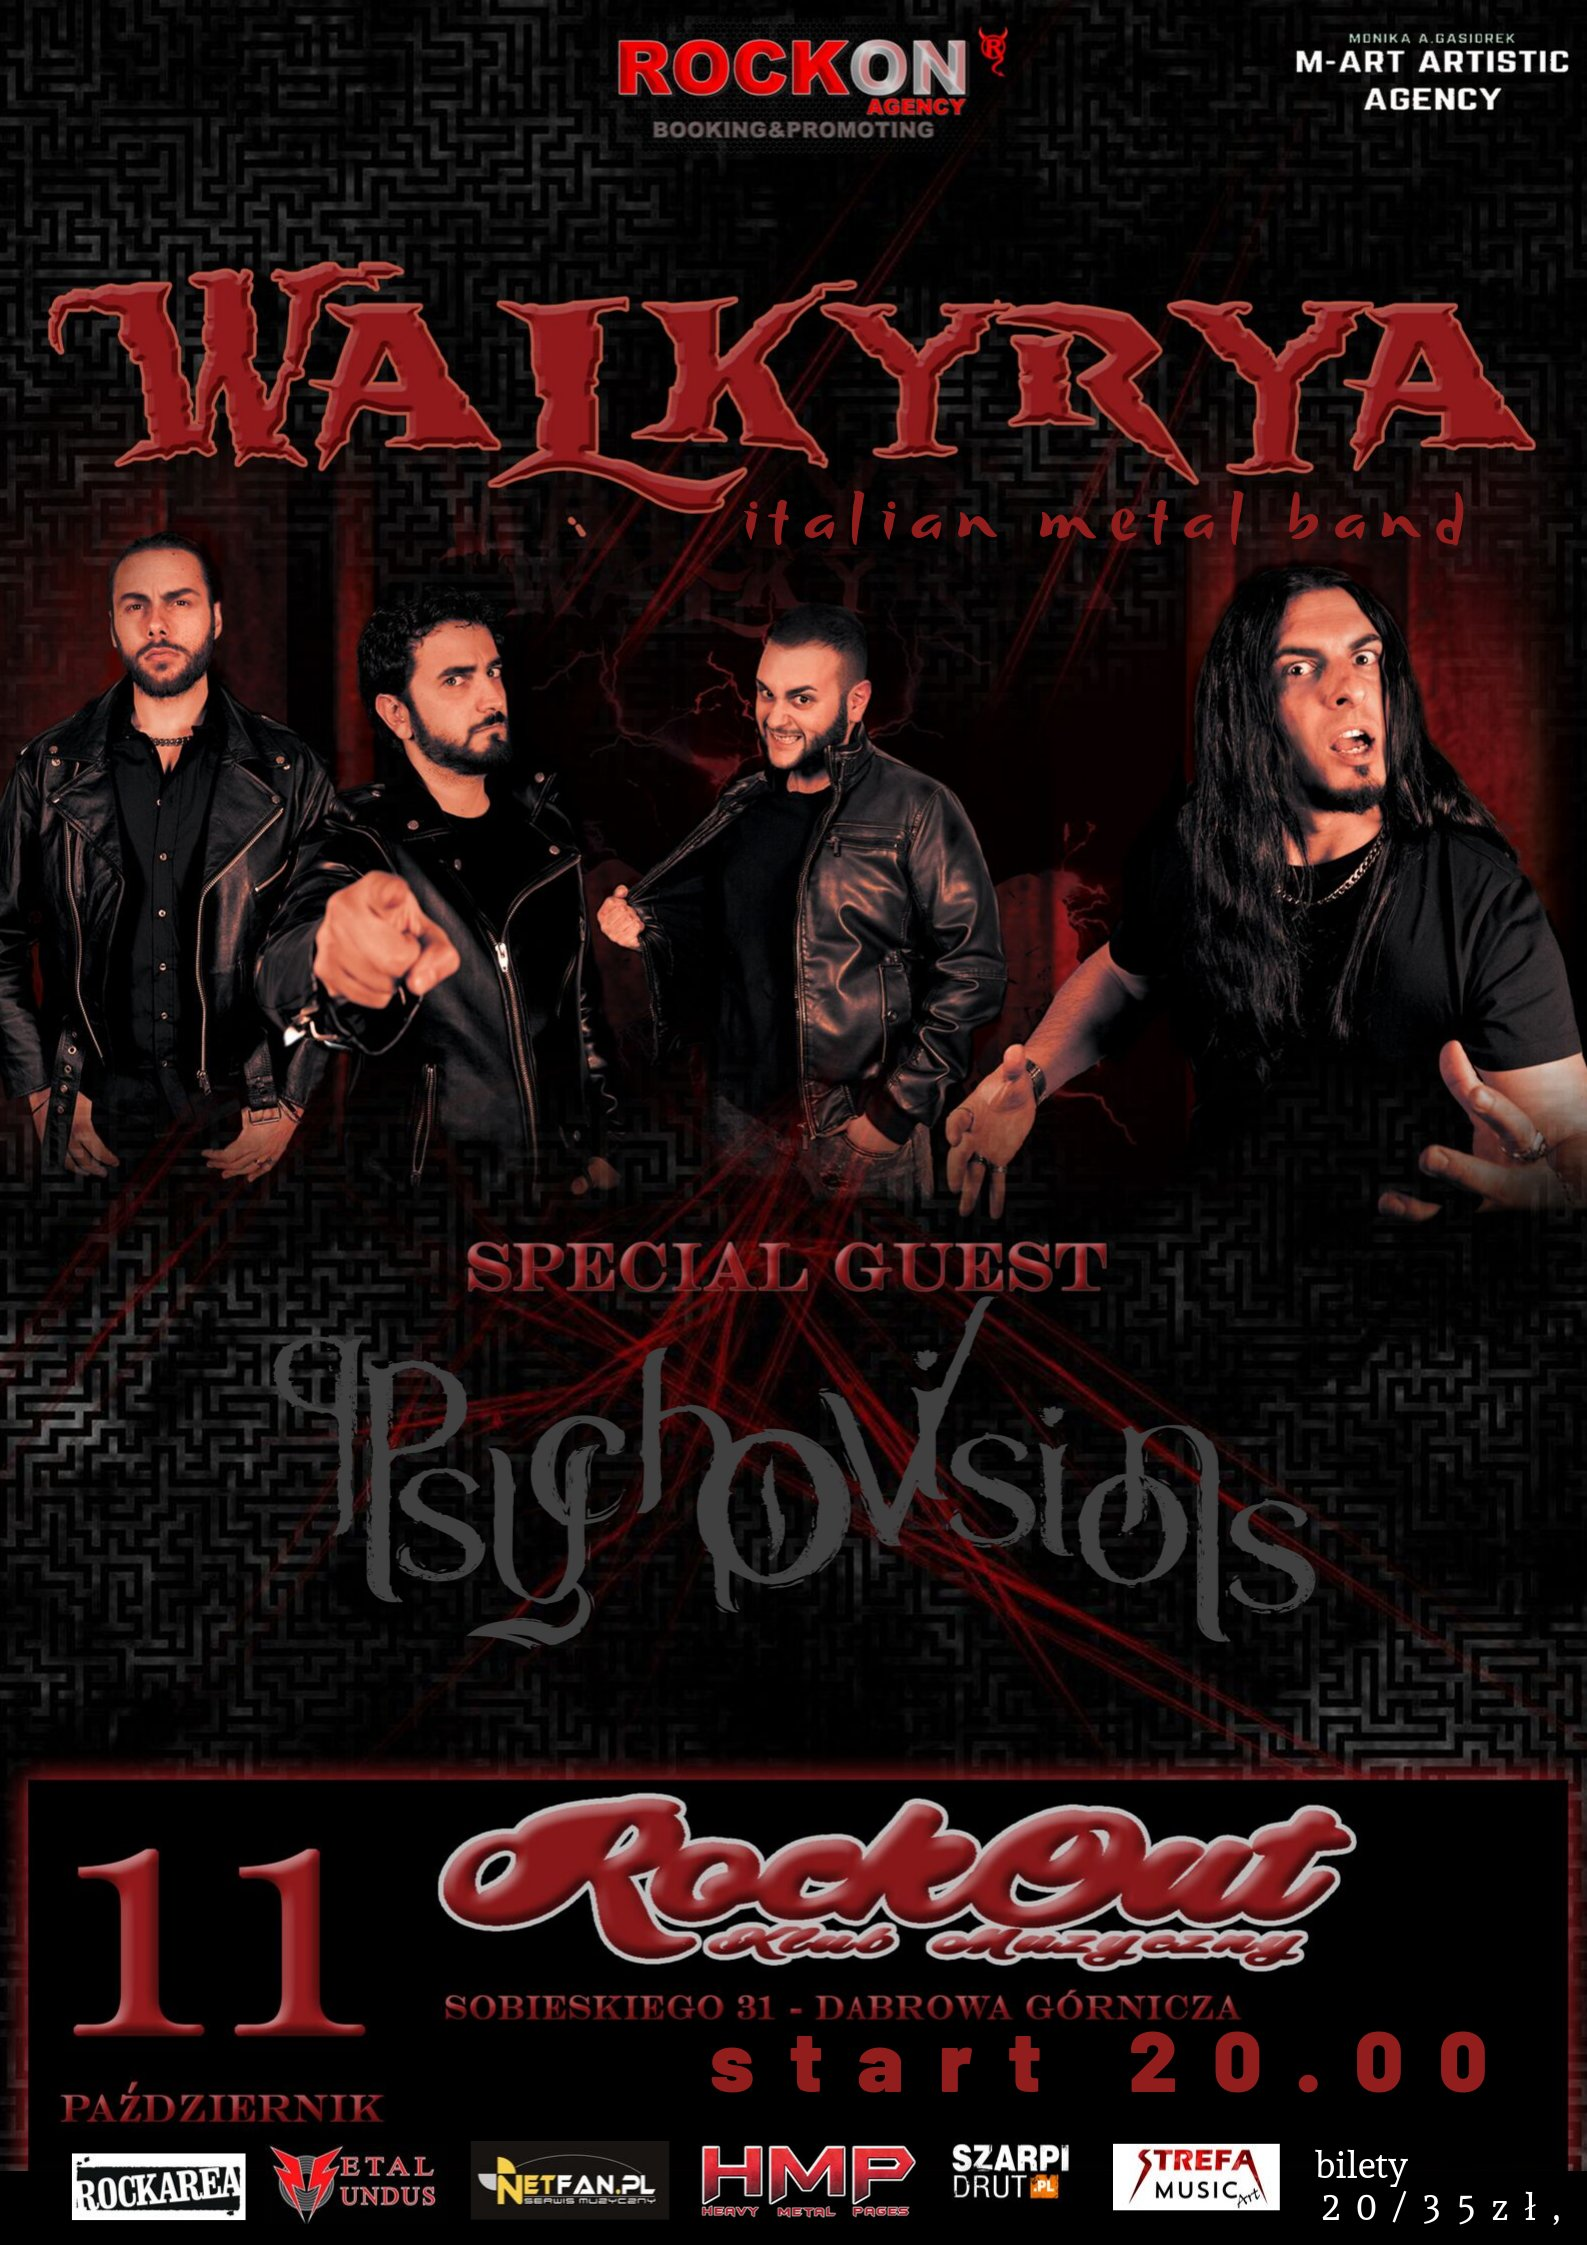 walkyrya italian metal band 111019 m-artzzz b